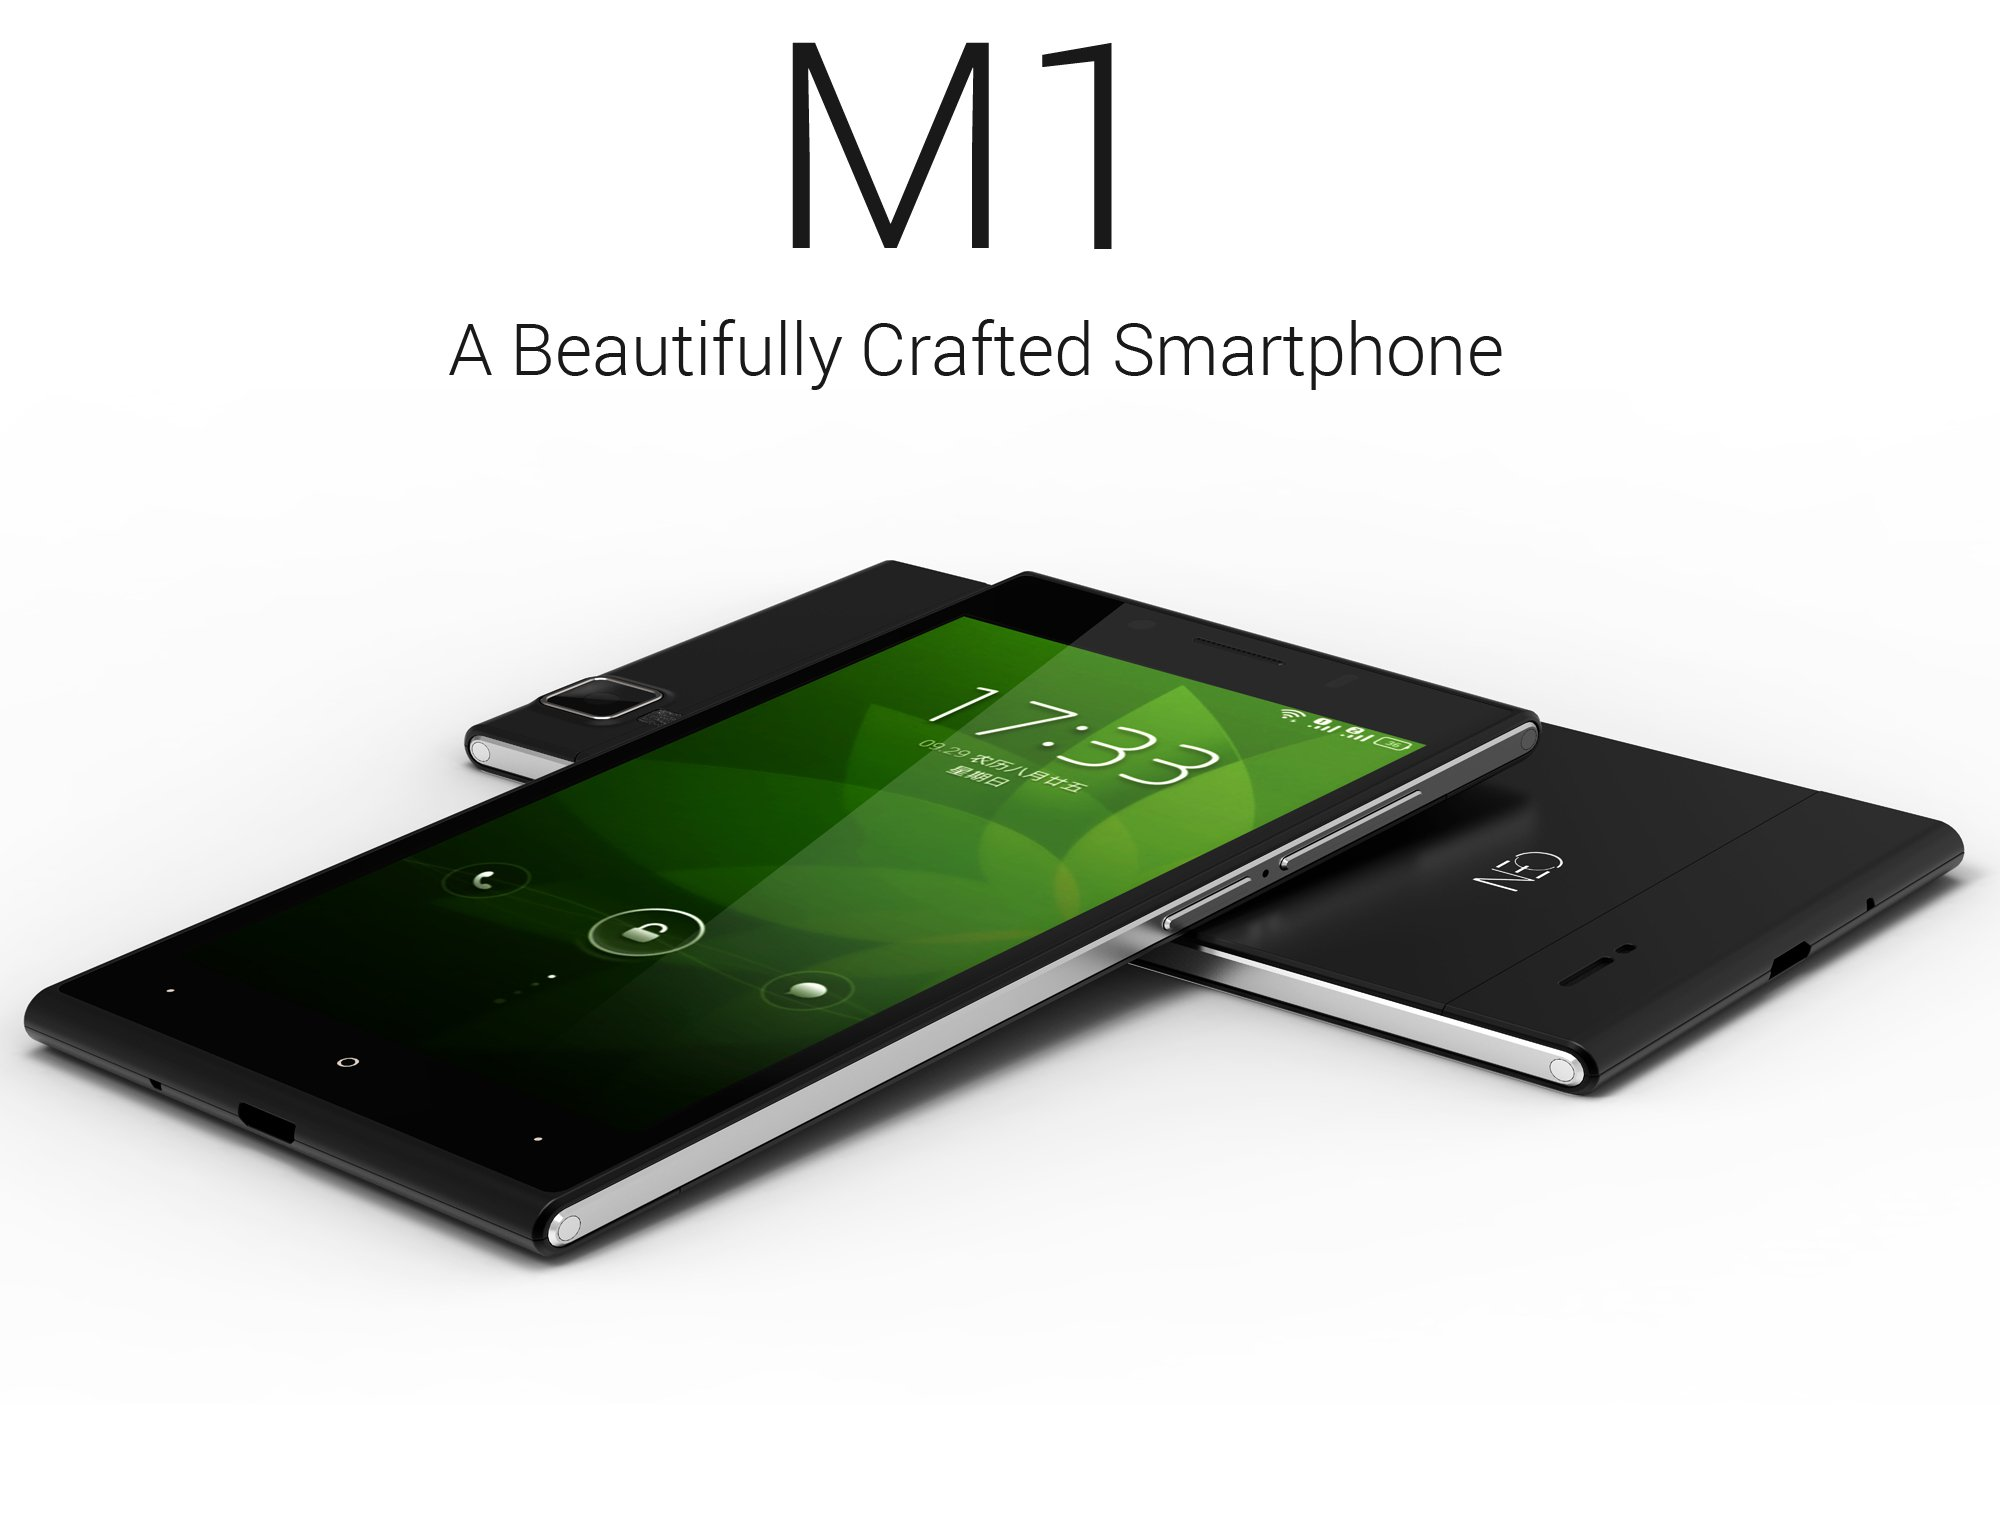 Neo M1 Android Smartphone Is On Holiday Sale For $120